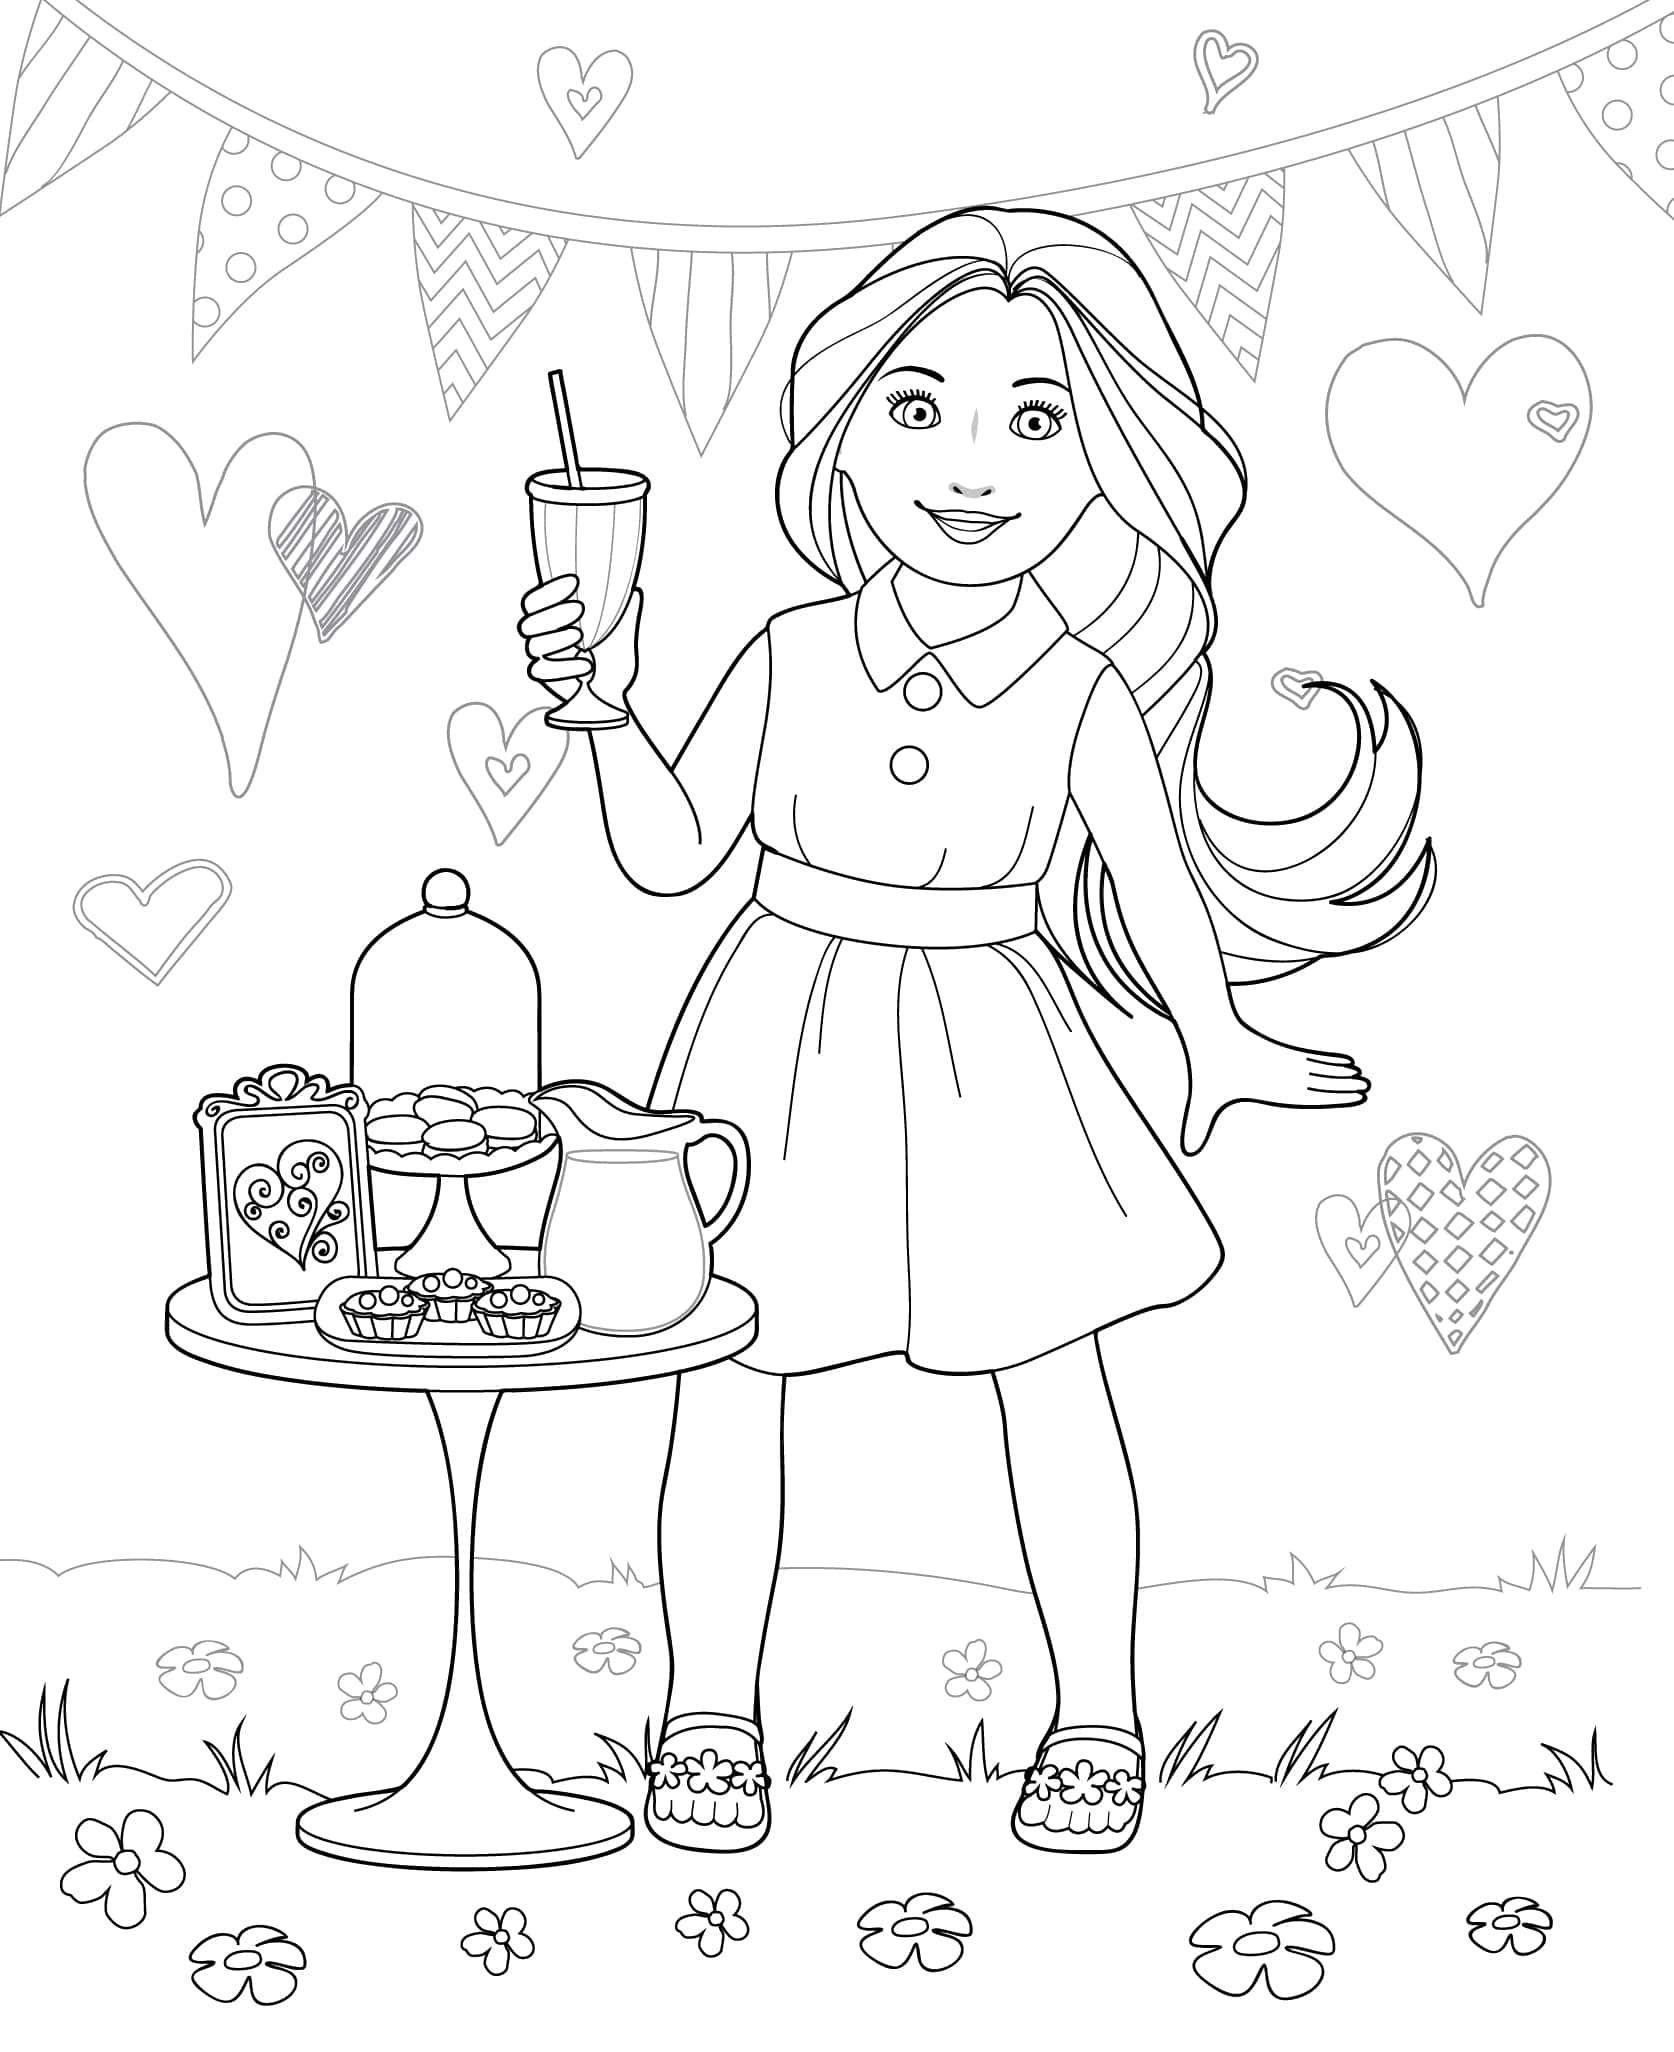 Doll Coloring Books Our Generation Coloring Books Coloring Pages Coloring Pages For Girls